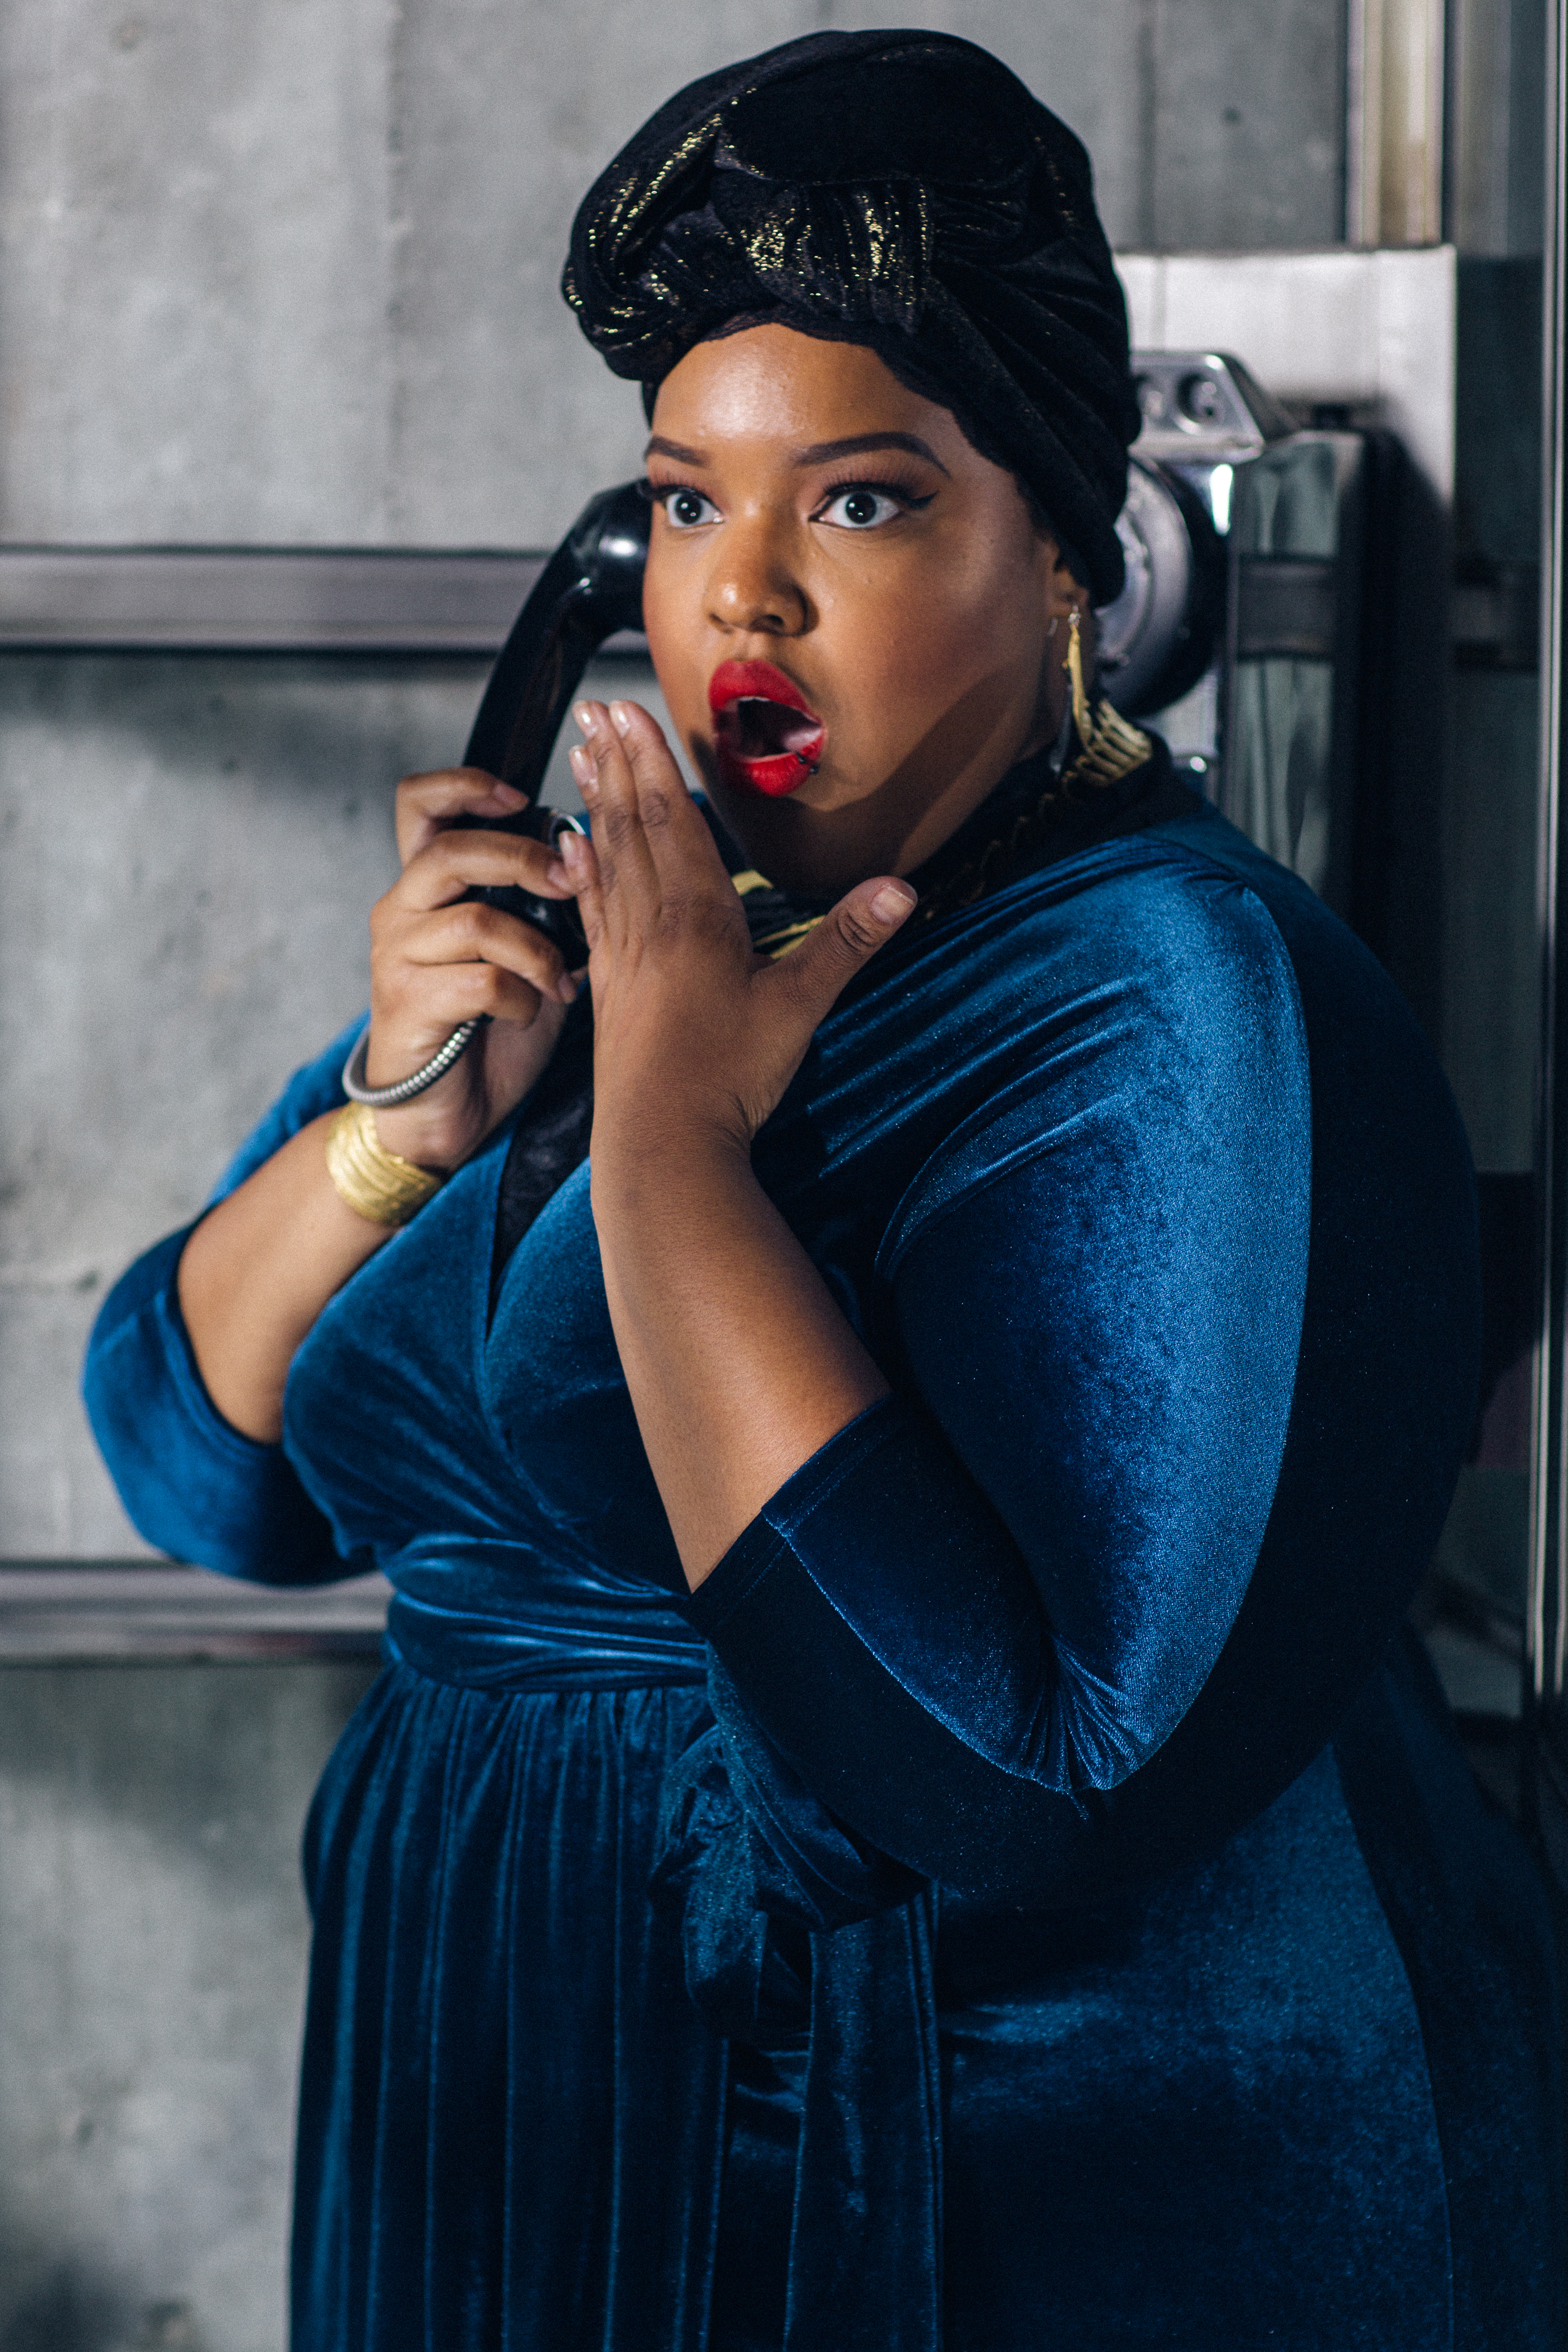 fat, black, muslim, and stylish as hell: an interview with fashion